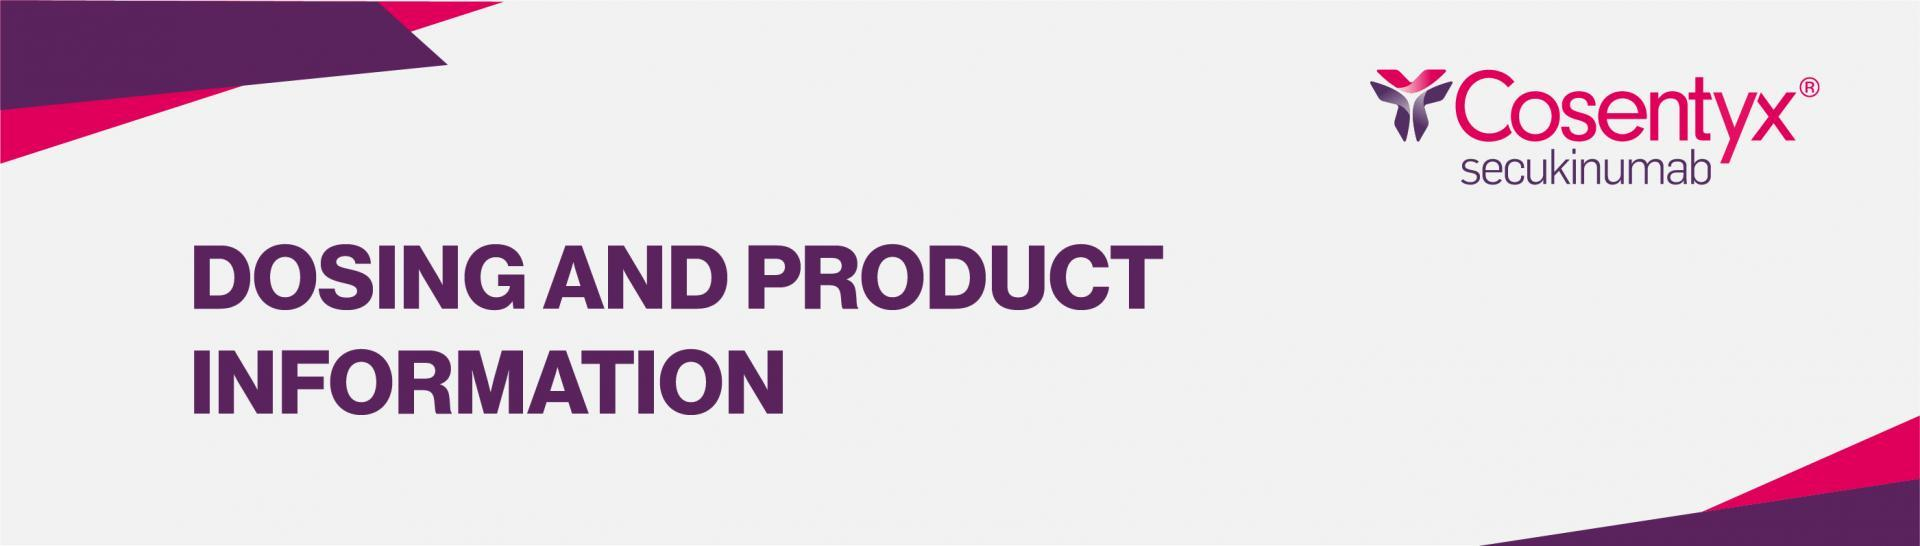 Top banner: Dosing and product information